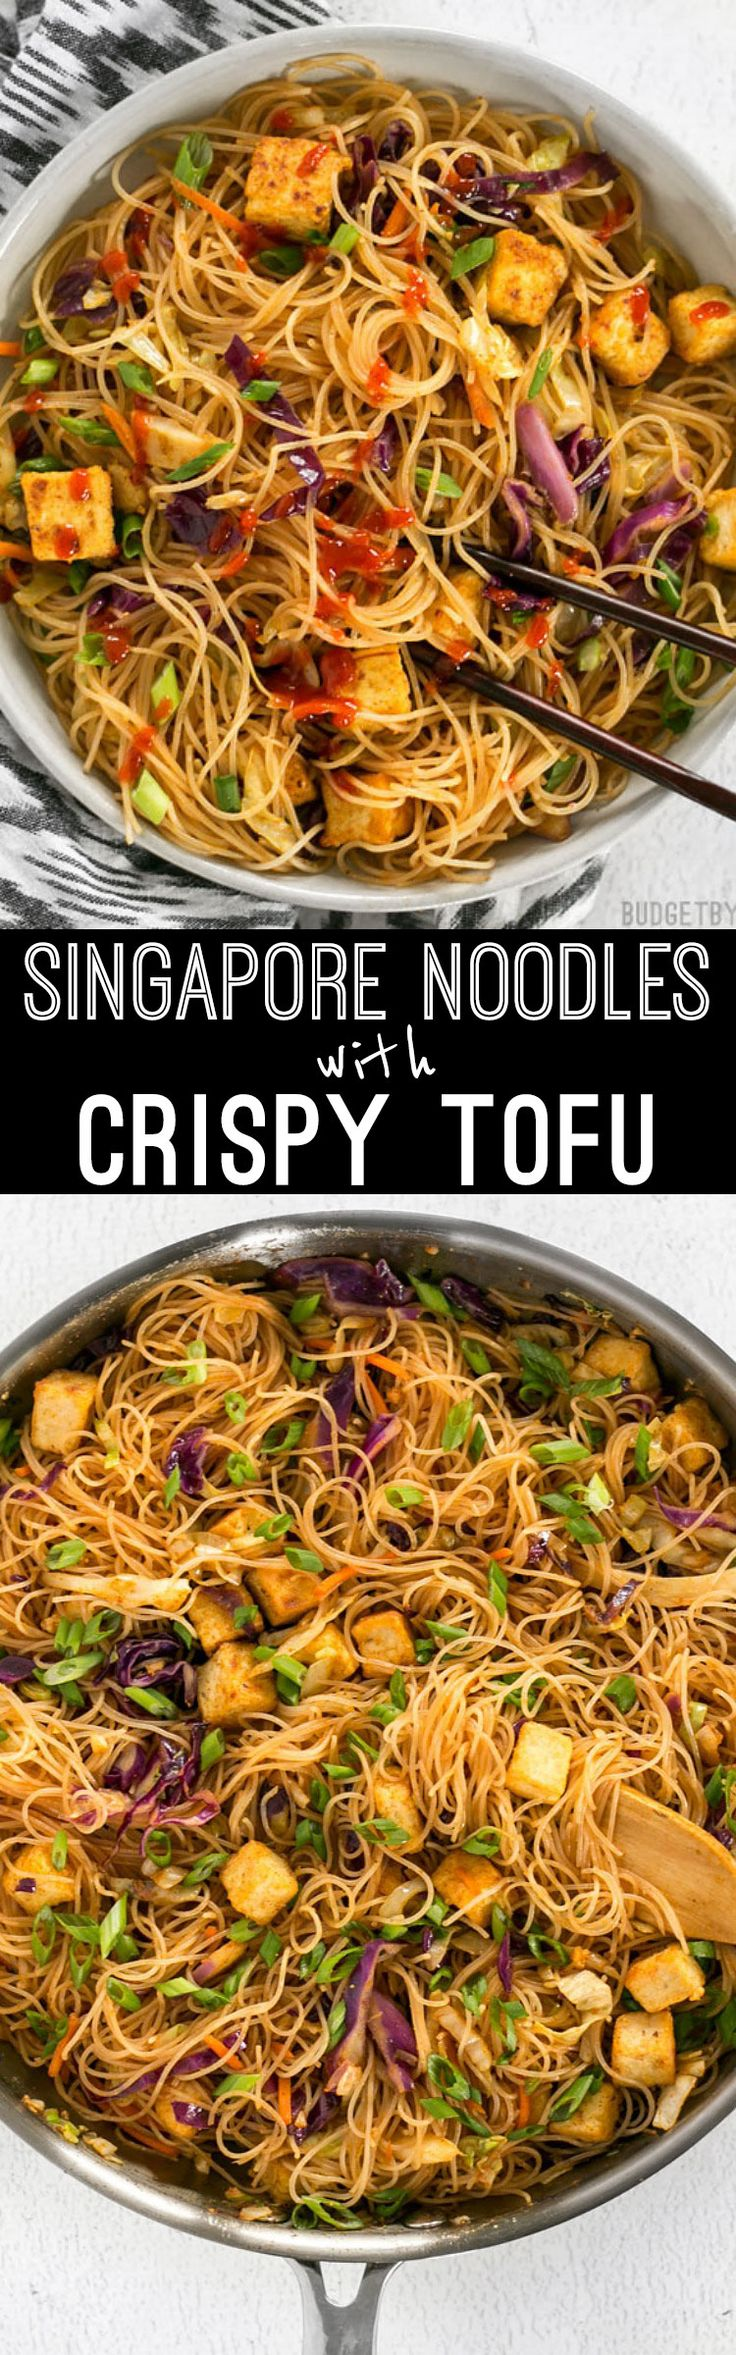 These Singapore Noodles with Crispy Tofu have a bold flavor and vibrant colors thanks to shredded vegetables and a bright curry sauce. @budgetbytes